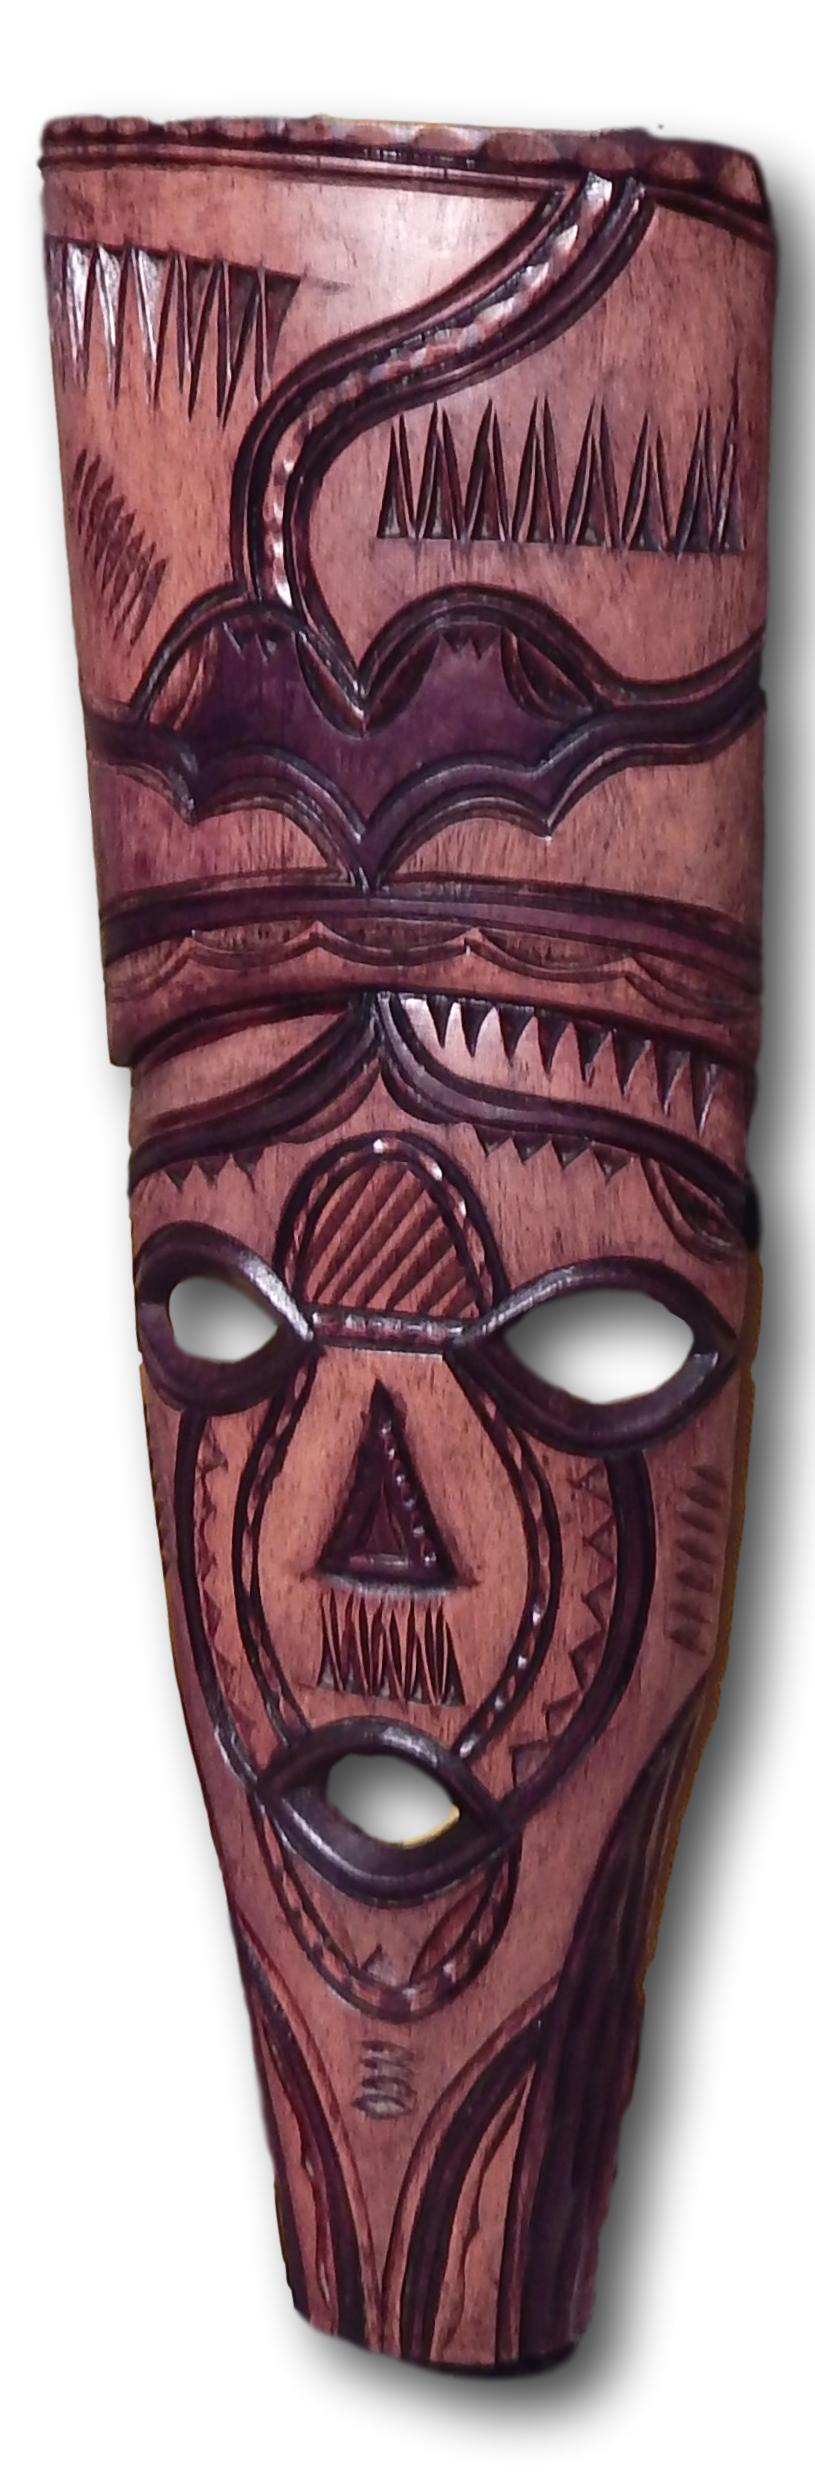 Mask decoration from Mukwa wood